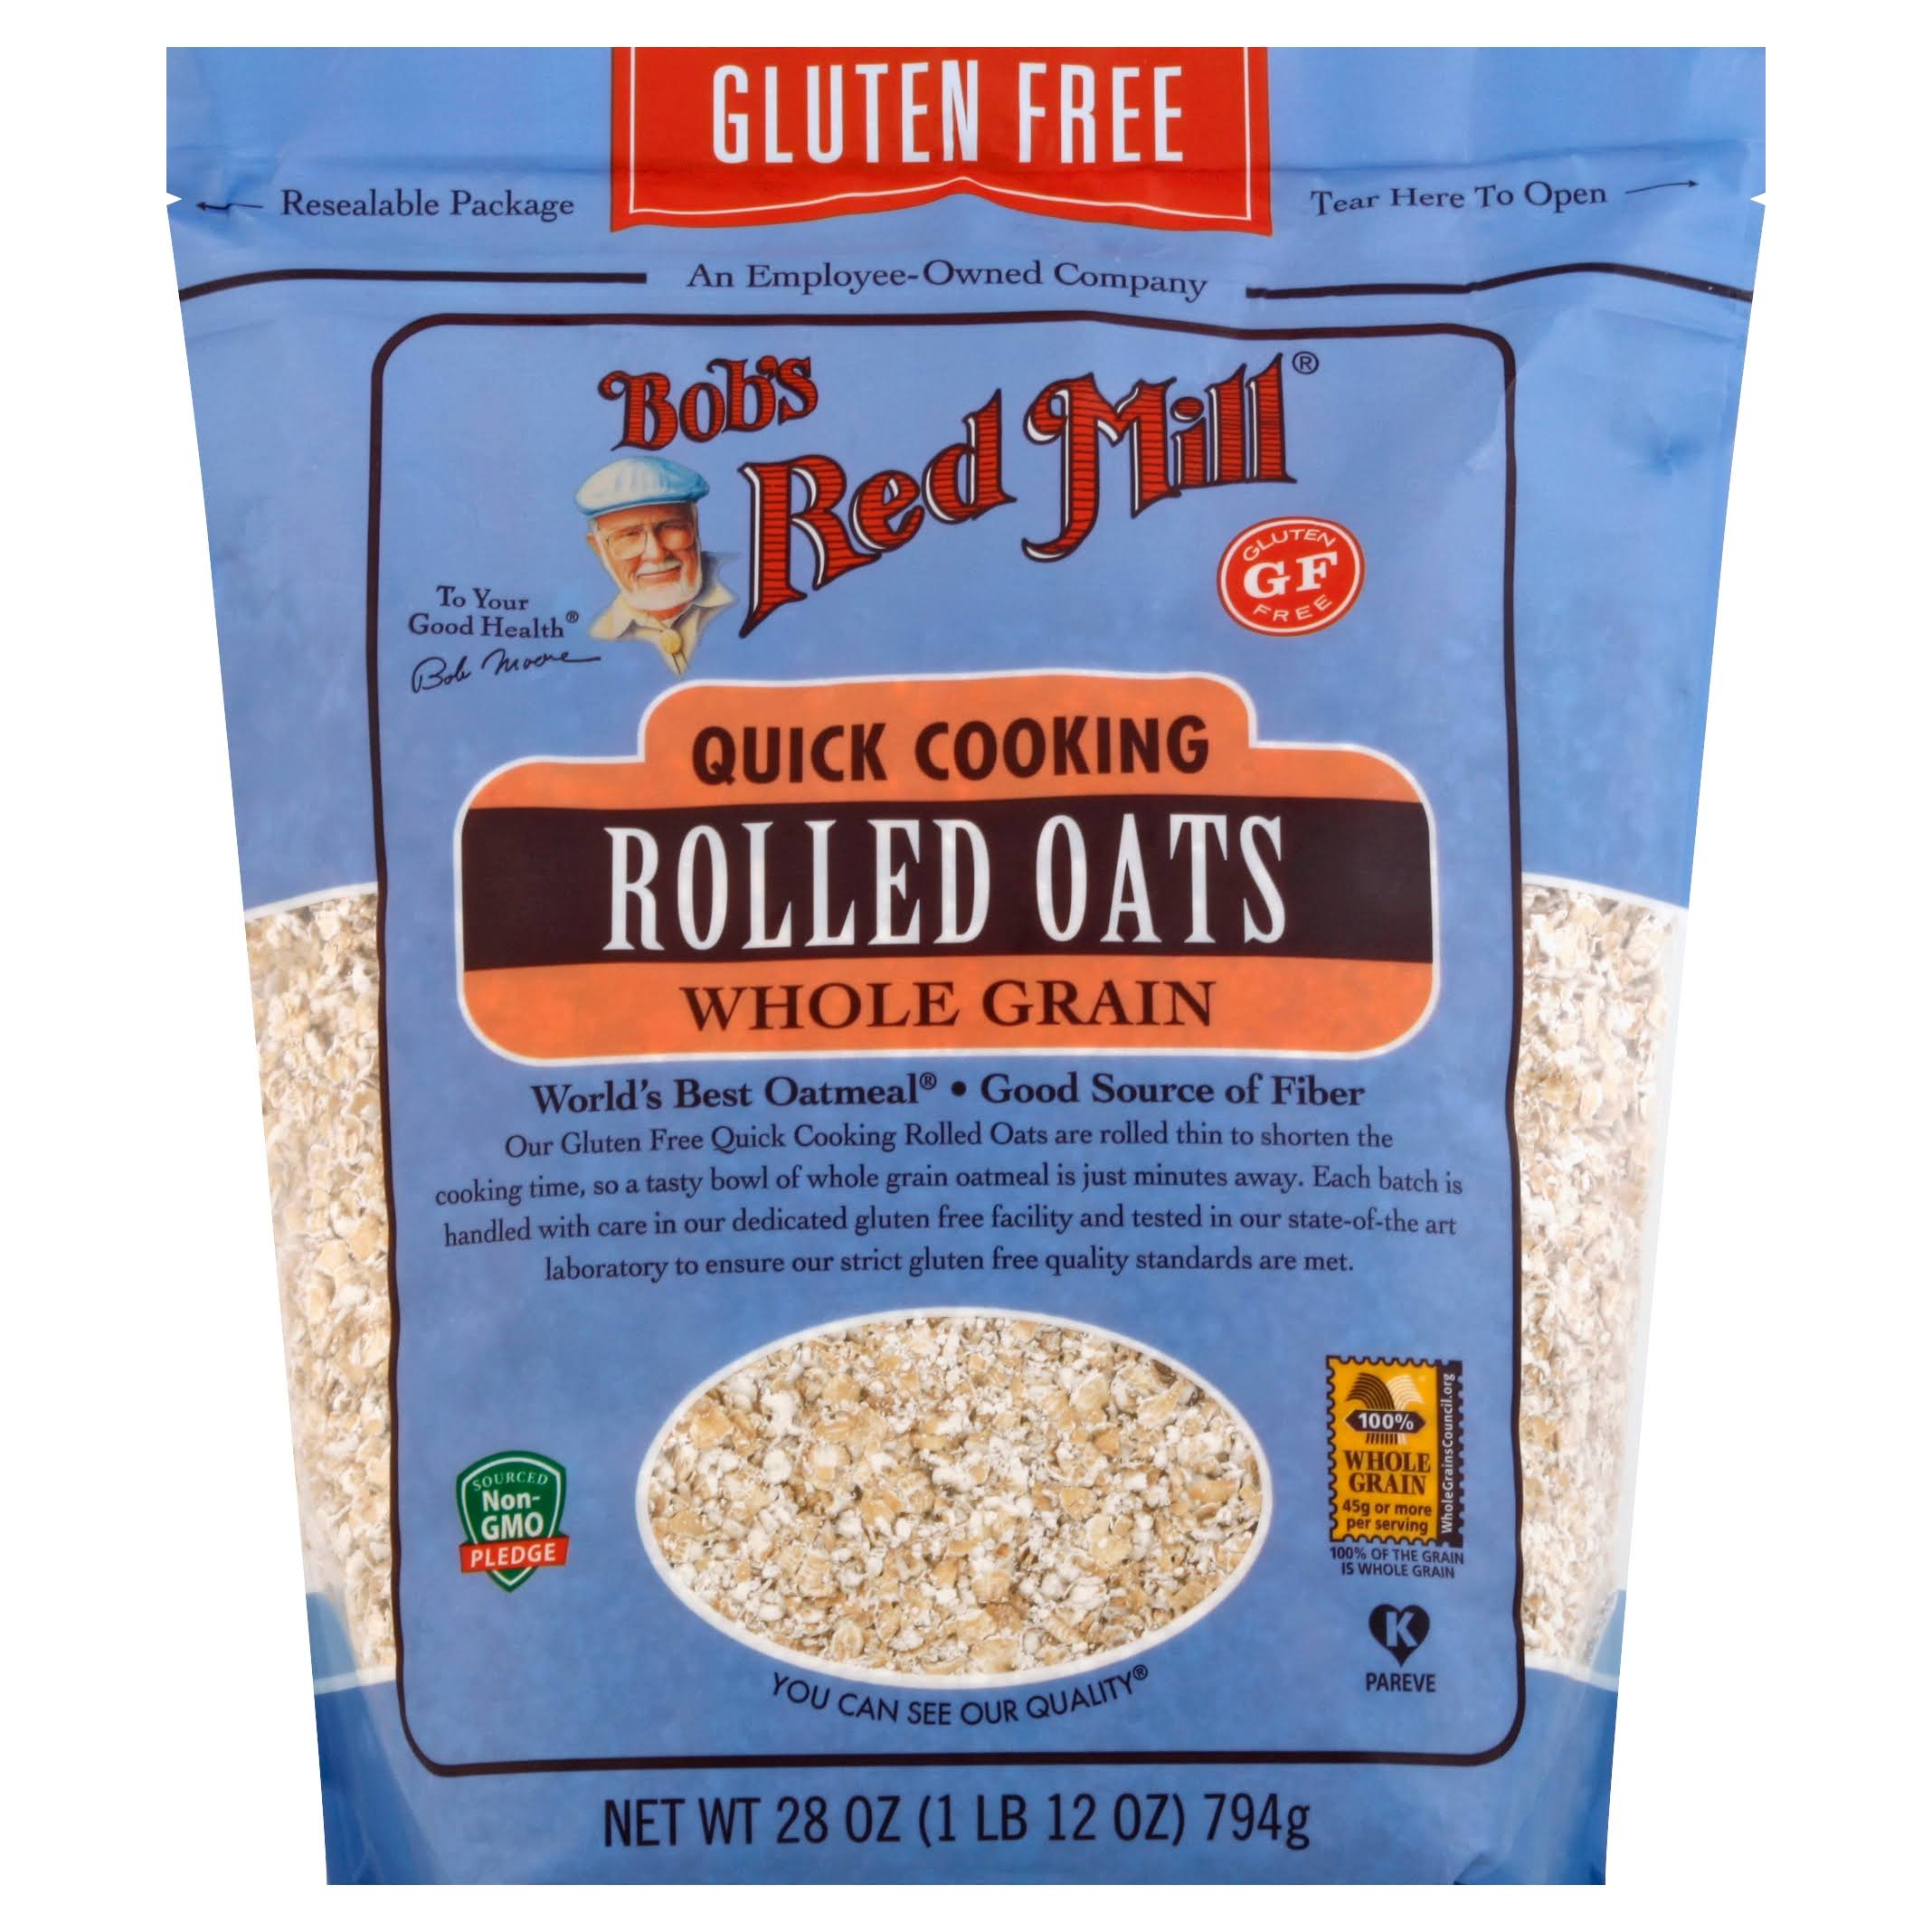 Bobs Red Mill Rolled Oats, Quick Cooking, Gluten Free, Whole Grain - 28 oz